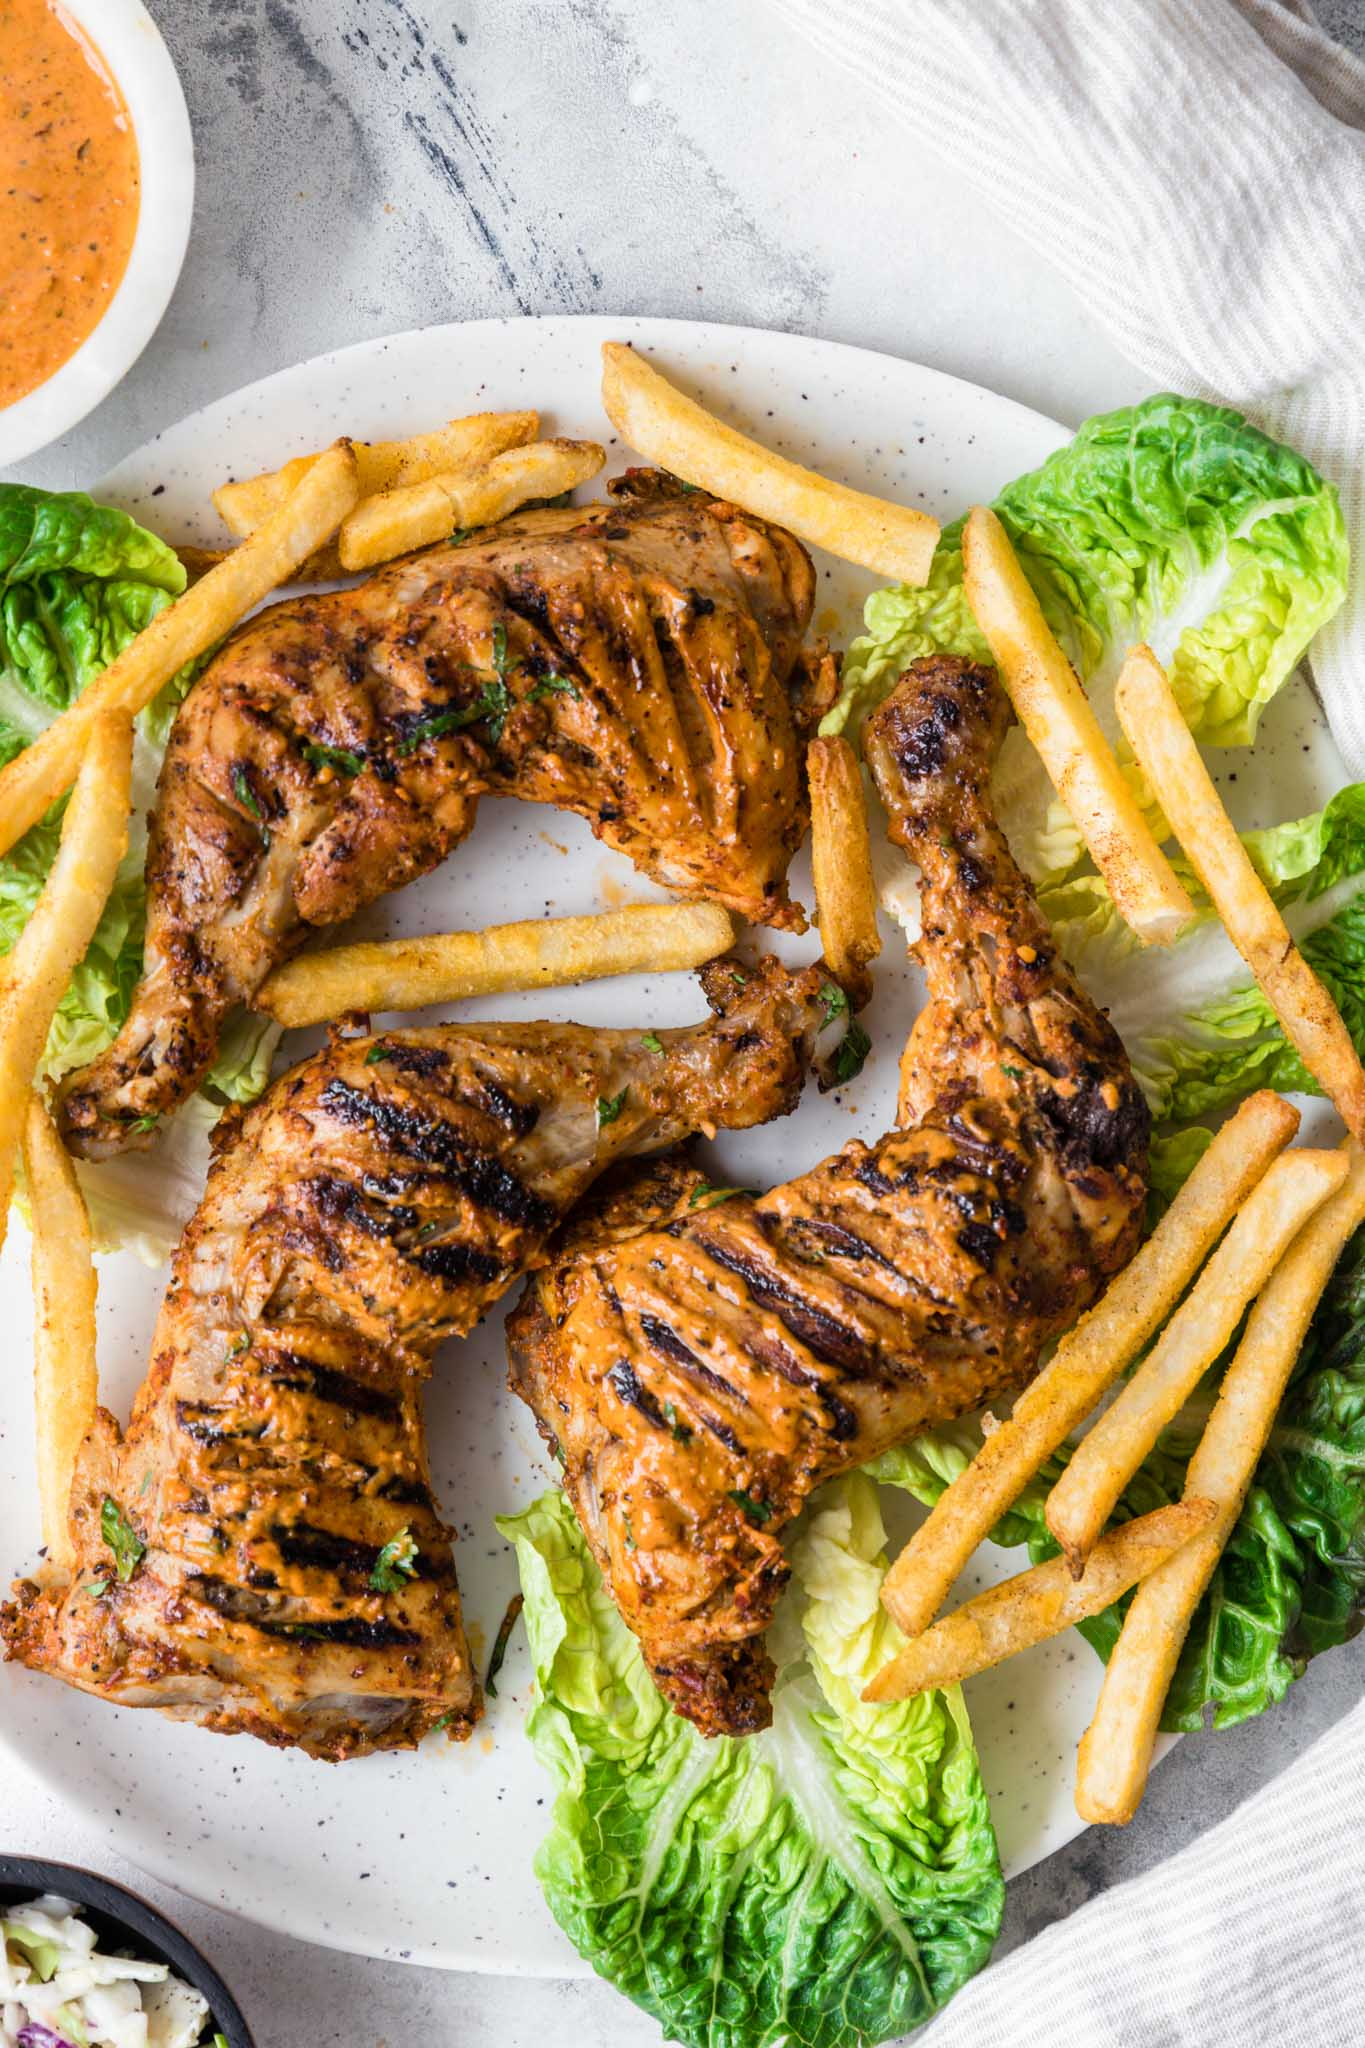 Tender Homemade Peri Peri Chicken on a round speckled plate with lettuce and french fries.